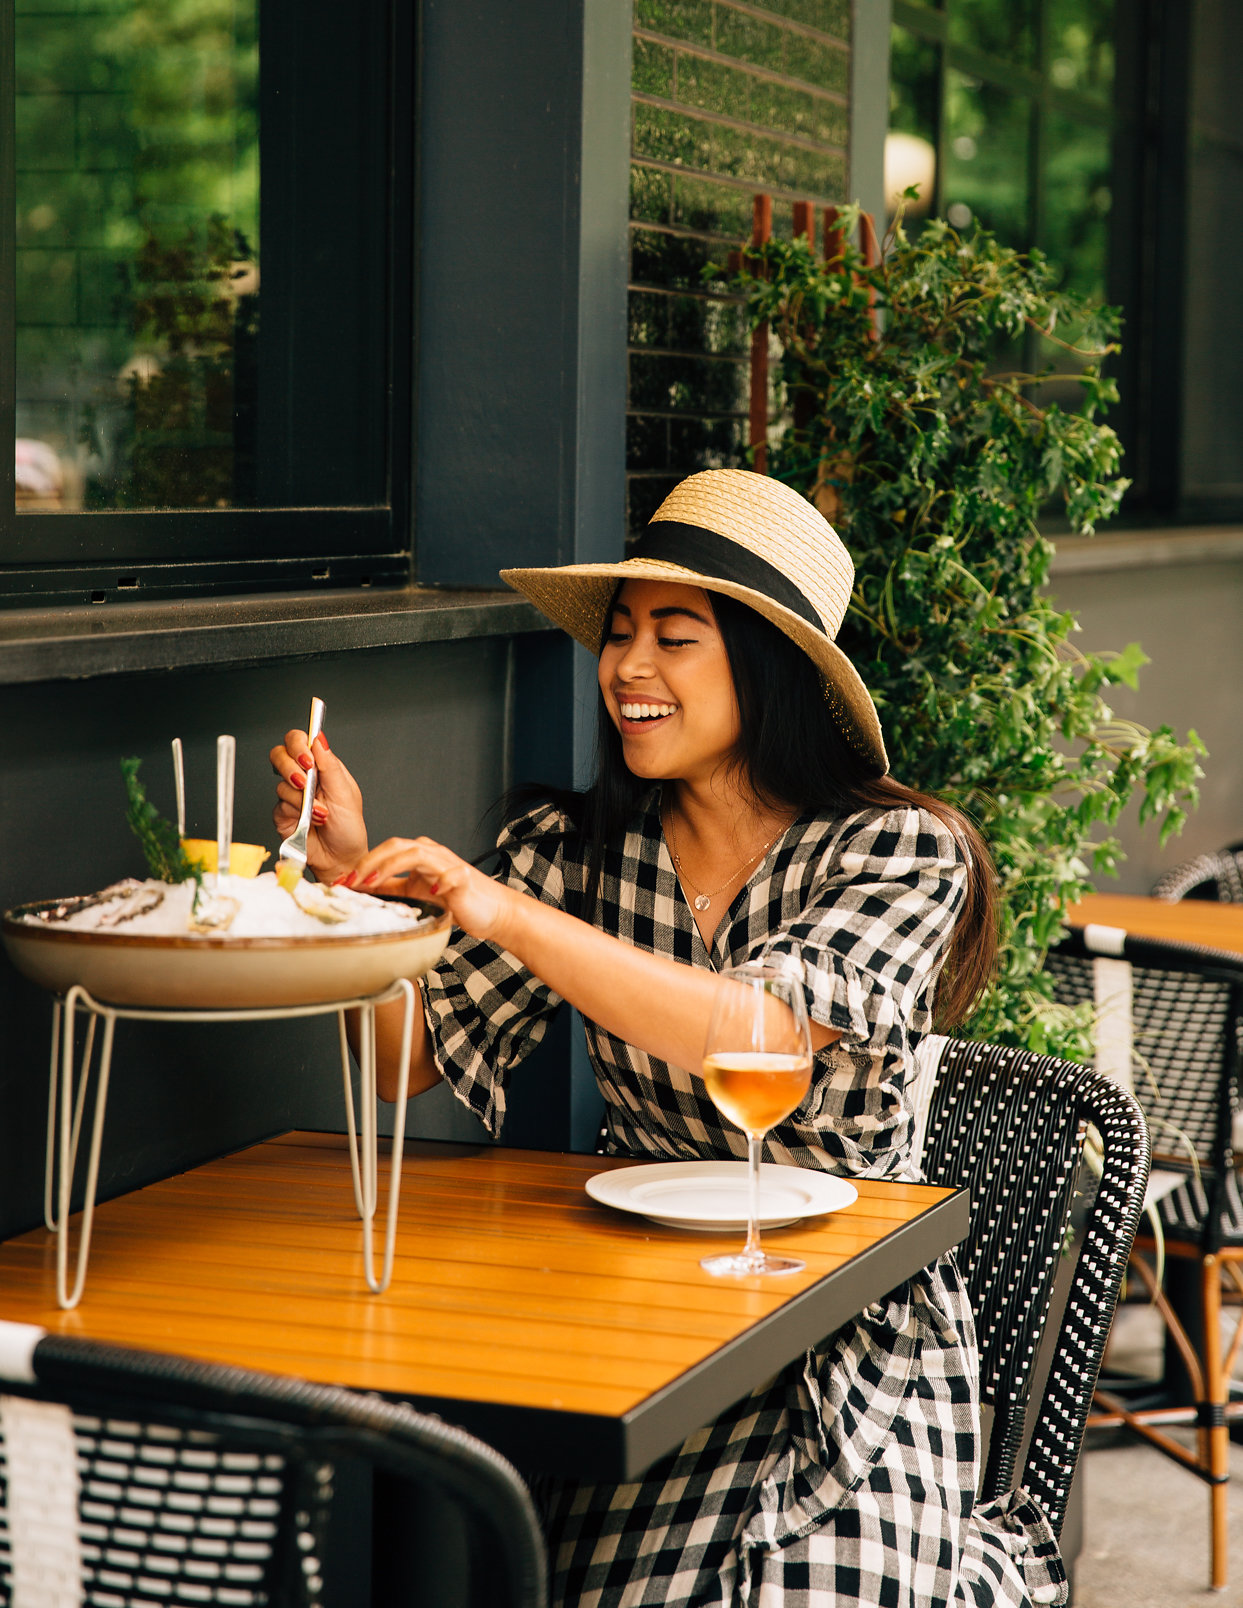 Hotel Theodore Seattle – Hotel Theodore Review – Visit Seattle – Hotel Theodore Seattle Reviews – Roosevelt Hotel Seattle – Where to stay in Seattle – what to do in Seattle